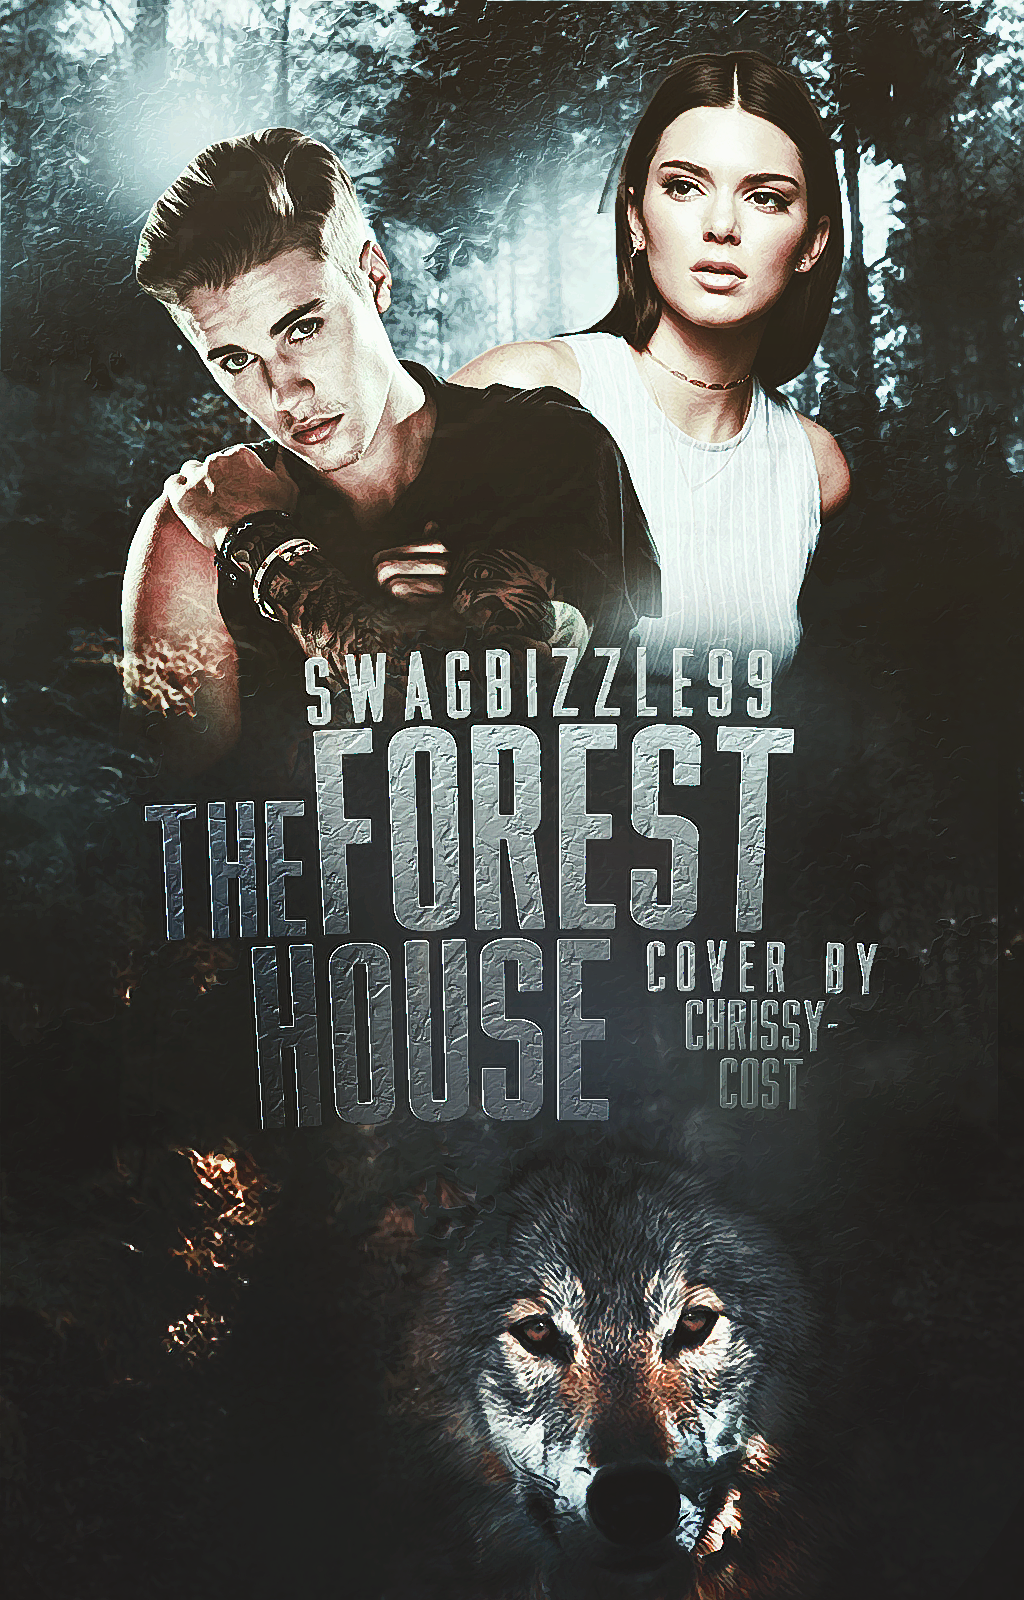 Wattpad Book Cover Psd : Wattpad cover the forest house by chrissy cost on deviantart